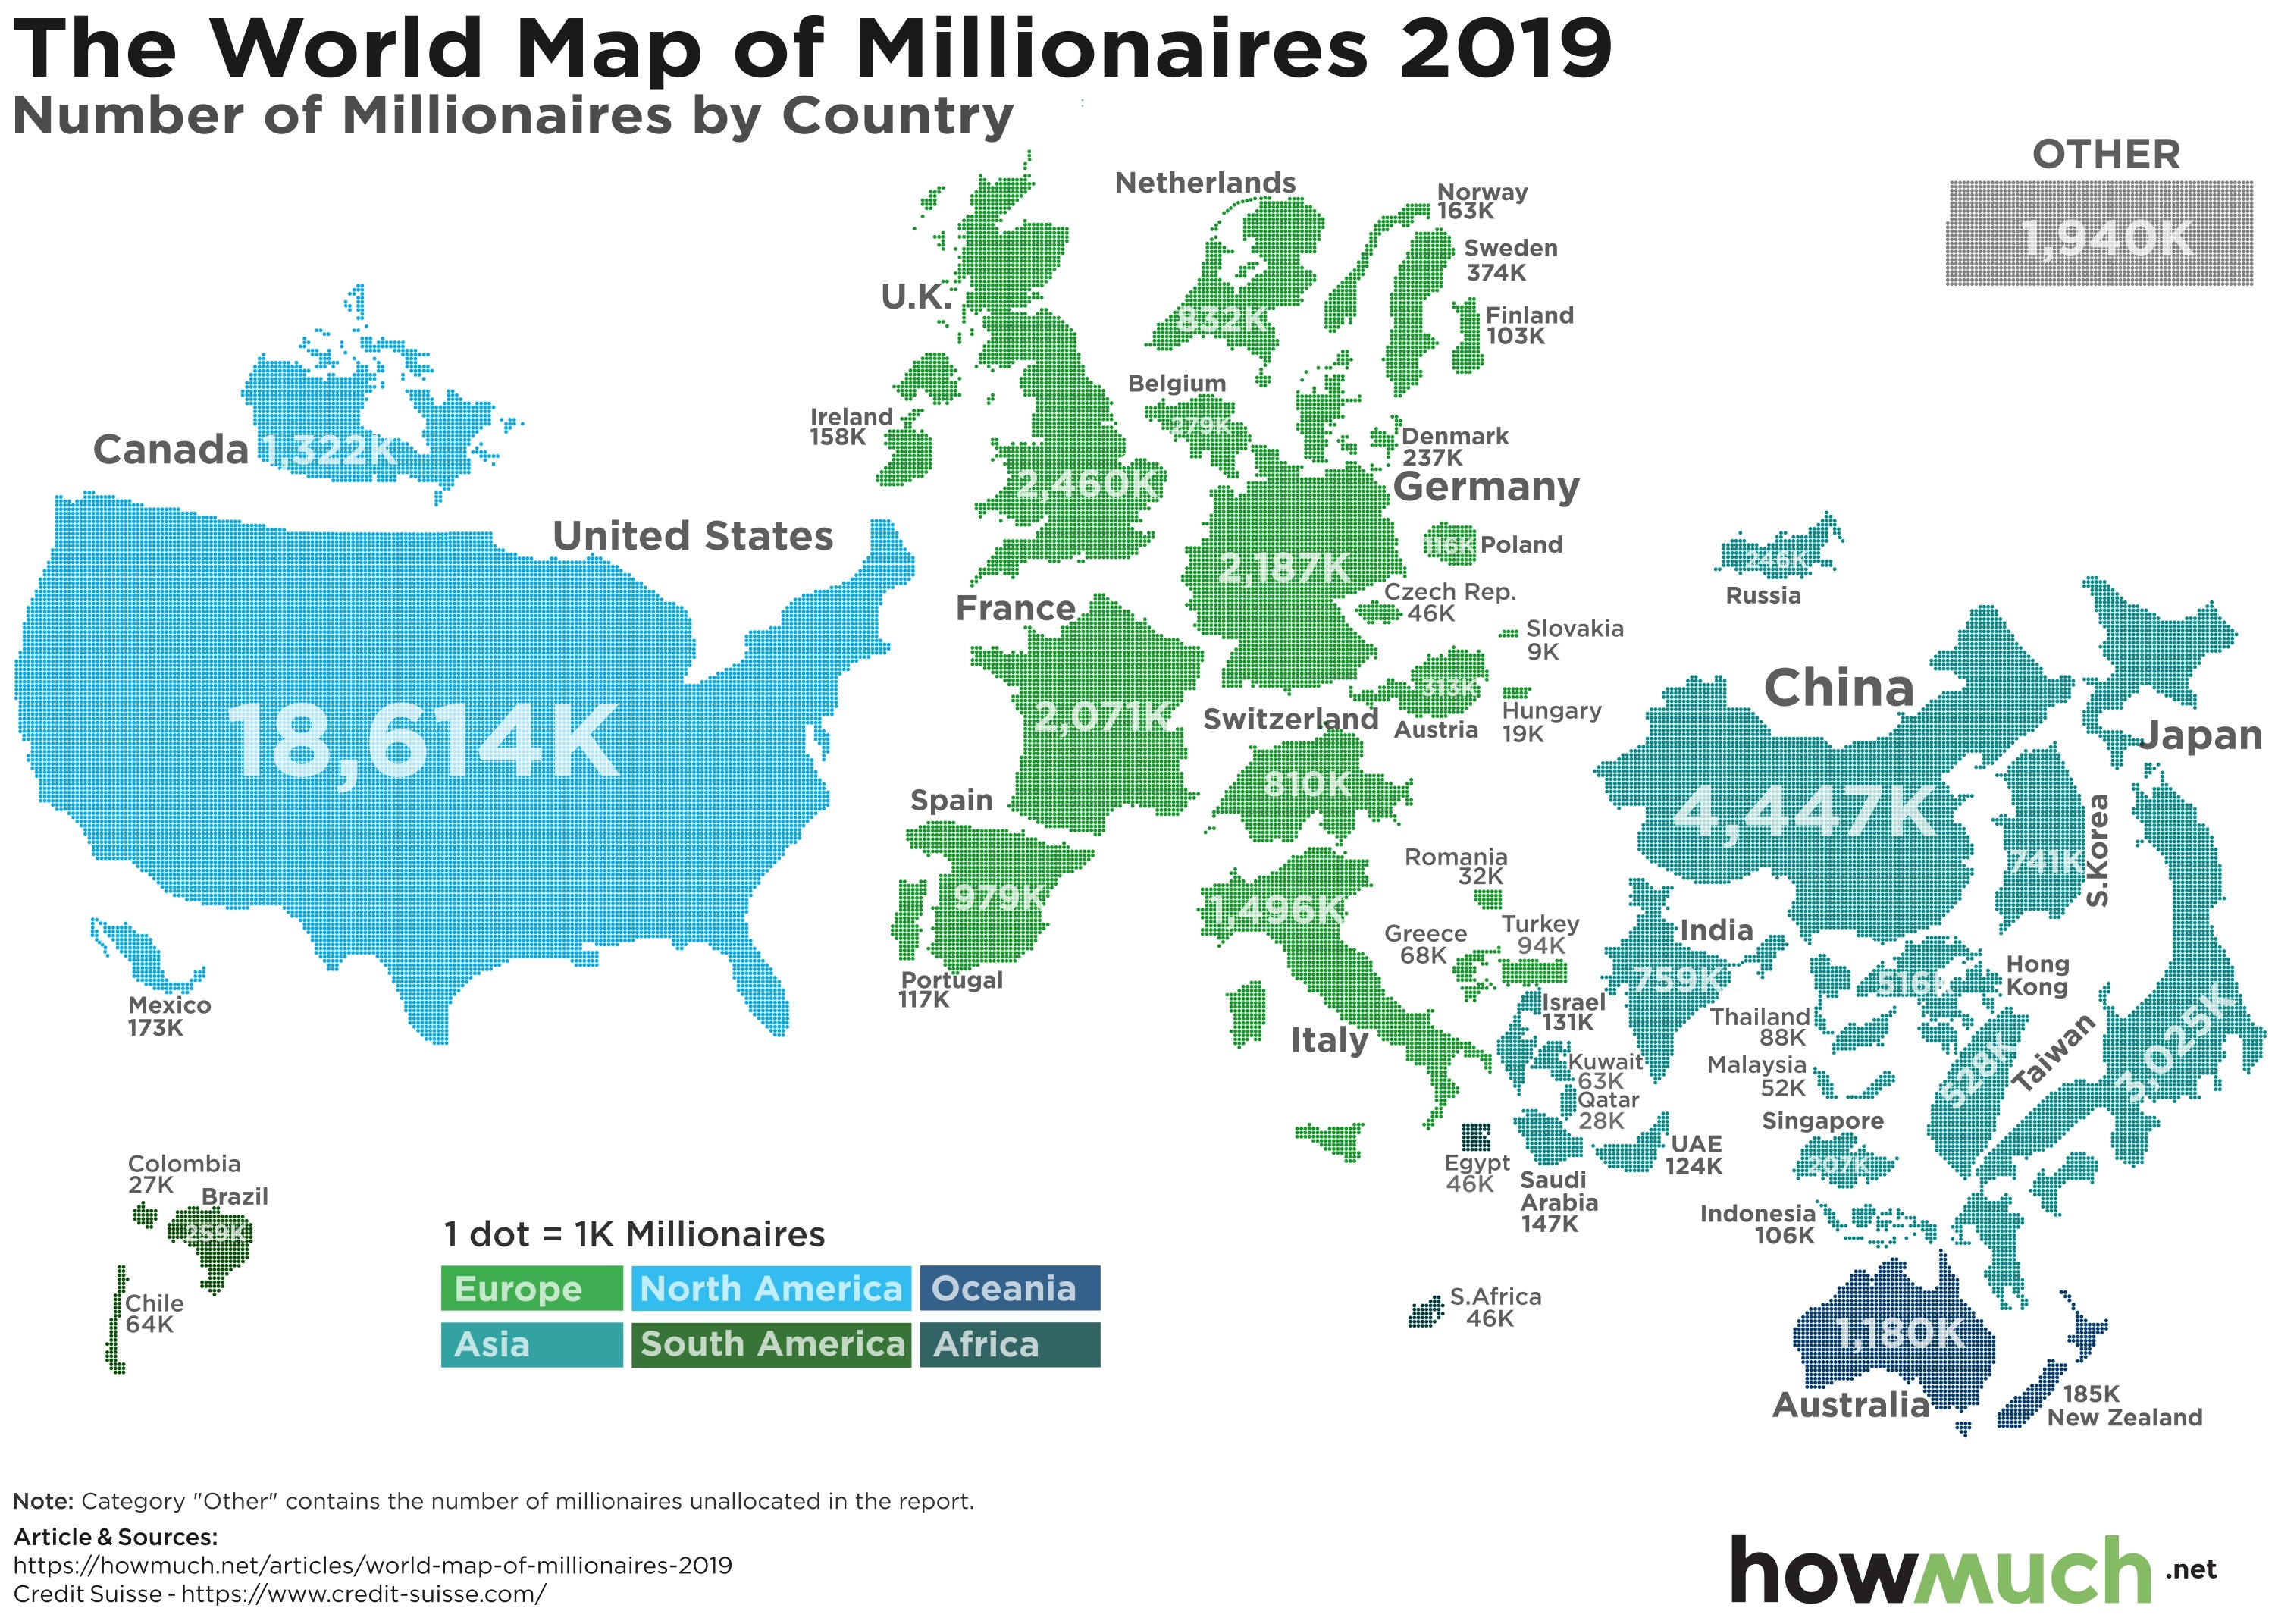 Mapping the Potion of Global Millionaires in 2019 on map of ohio, map of denmark, map of italy, map of belgium, map of new zealand, map of hong kong, map of africa, map of germany, map of usa, map of florida, map of france, map of south america, map of china, map of dubai, map of georgia, map of the united states, map of philippines, map of vietnam, map of europe, map of country, map of western hemisphere, map of us, map of britain, map of finland, map of taiwan, map of austria, map of mexico, map of california, map of indonesia, map of texas, map of canada, map of new york, map of malaysia, map of norway, map of north carolina, map of uk, map of countries, map of iraq, map of thailand,